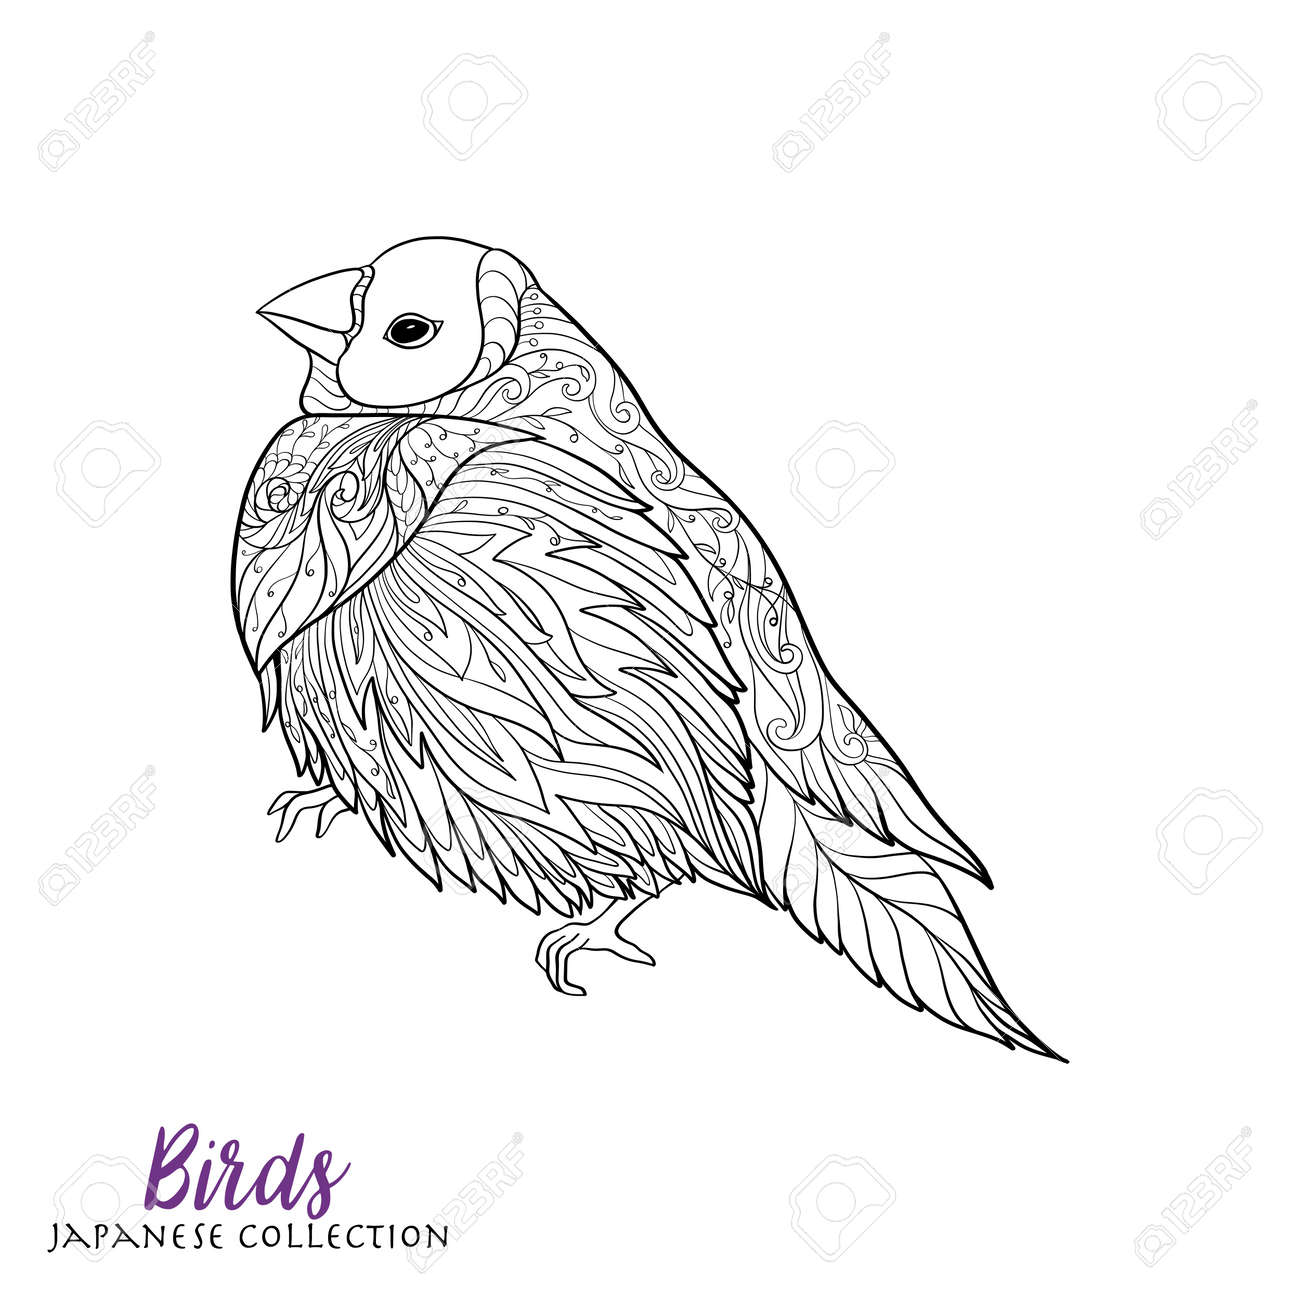 Japanese Birds Stock Line Vector Illustration Coloring Book For Adult Outline Drawing